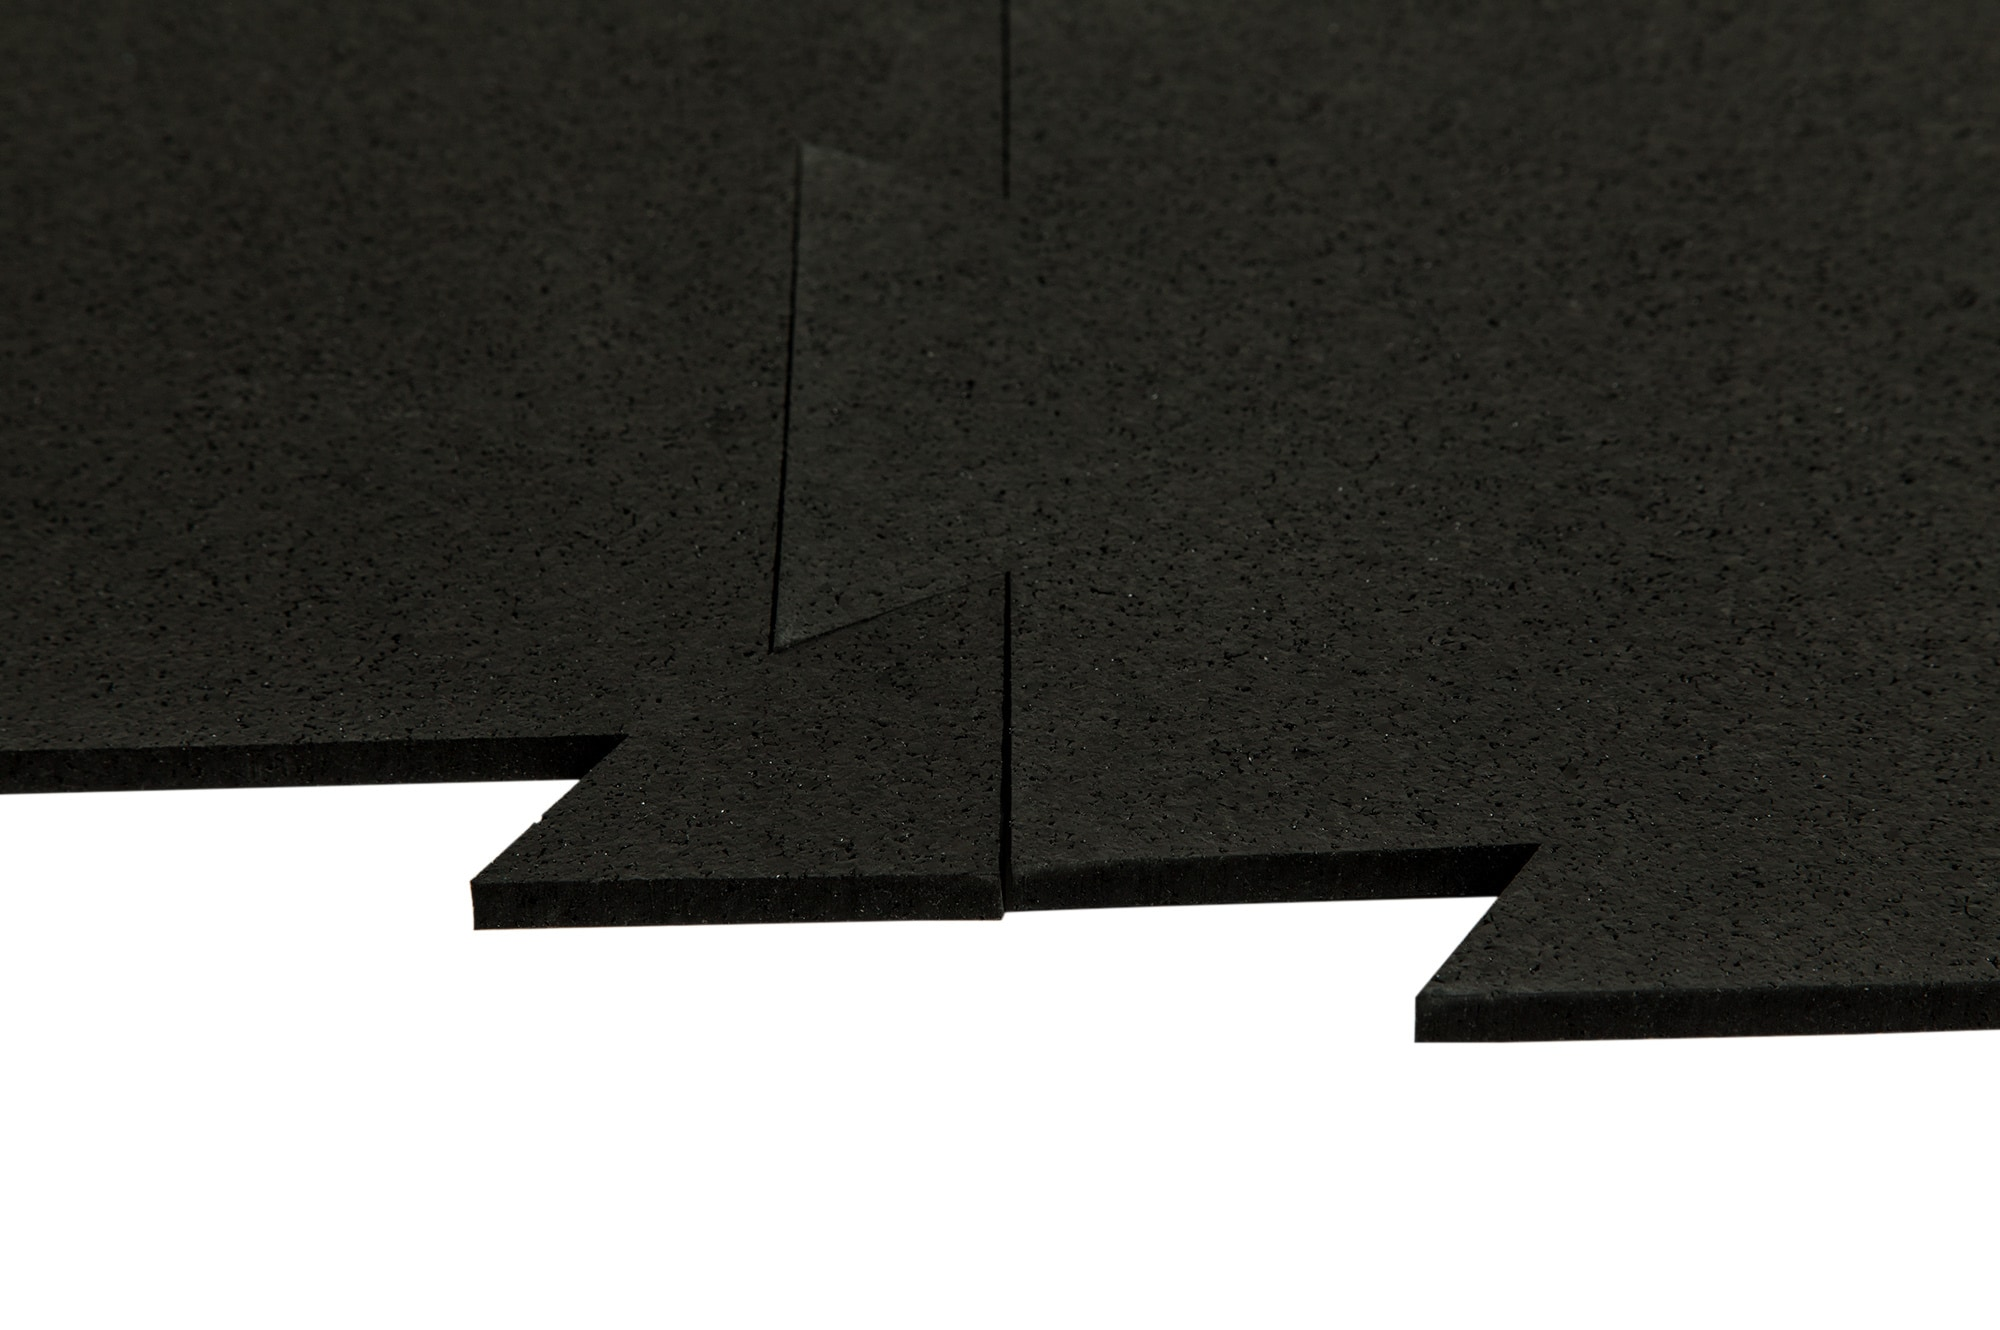 Free samples brava rubber floor tiles interlocking endurance free samples brava rubber floor tiles interlocking endurance collection basalt black 3x3x14 dailygadgetfo Images